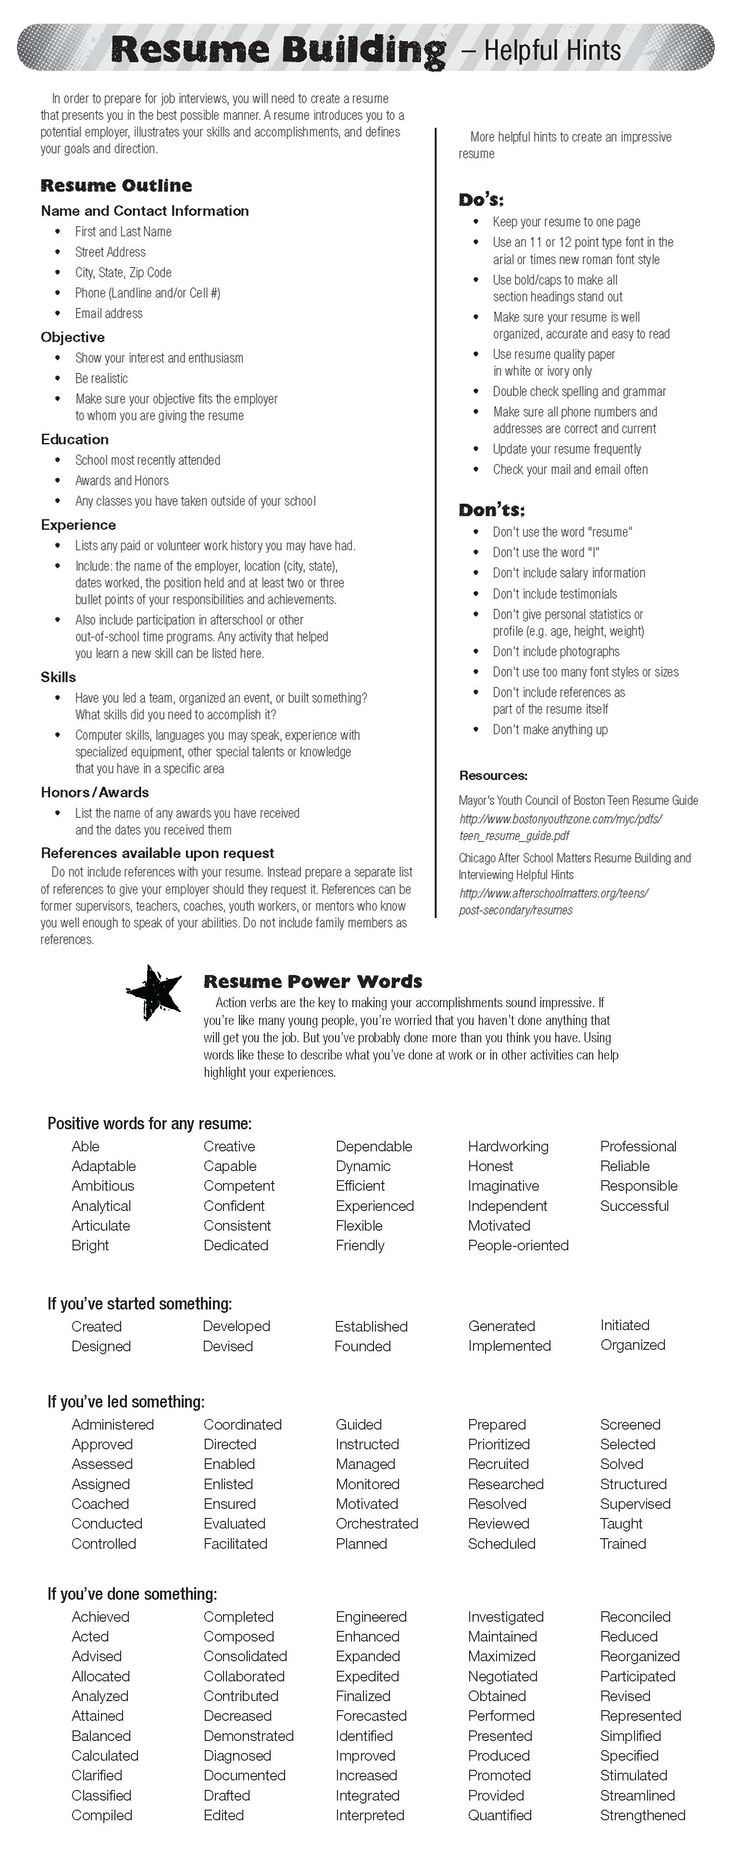 Opposenewapstandardsus  Marvellous  Ideas About Resume On Pinterest  Cv Format Resume Cv And  With Excellent  Ideas About Resume On Pinterest  Cv Format Resume Cv And Resume Templates With Astounding College Resume Example Also Objective Statement On Resume In Addition Starbucks Resume And Librarian Resume As Well As I Need A Resume Additionally Fonts For Resumes From Pinterestcom With Opposenewapstandardsus  Excellent  Ideas About Resume On Pinterest  Cv Format Resume Cv And  With Astounding  Ideas About Resume On Pinterest  Cv Format Resume Cv And Resume Templates And Marvellous College Resume Example Also Objective Statement On Resume In Addition Starbucks Resume From Pinterestcom